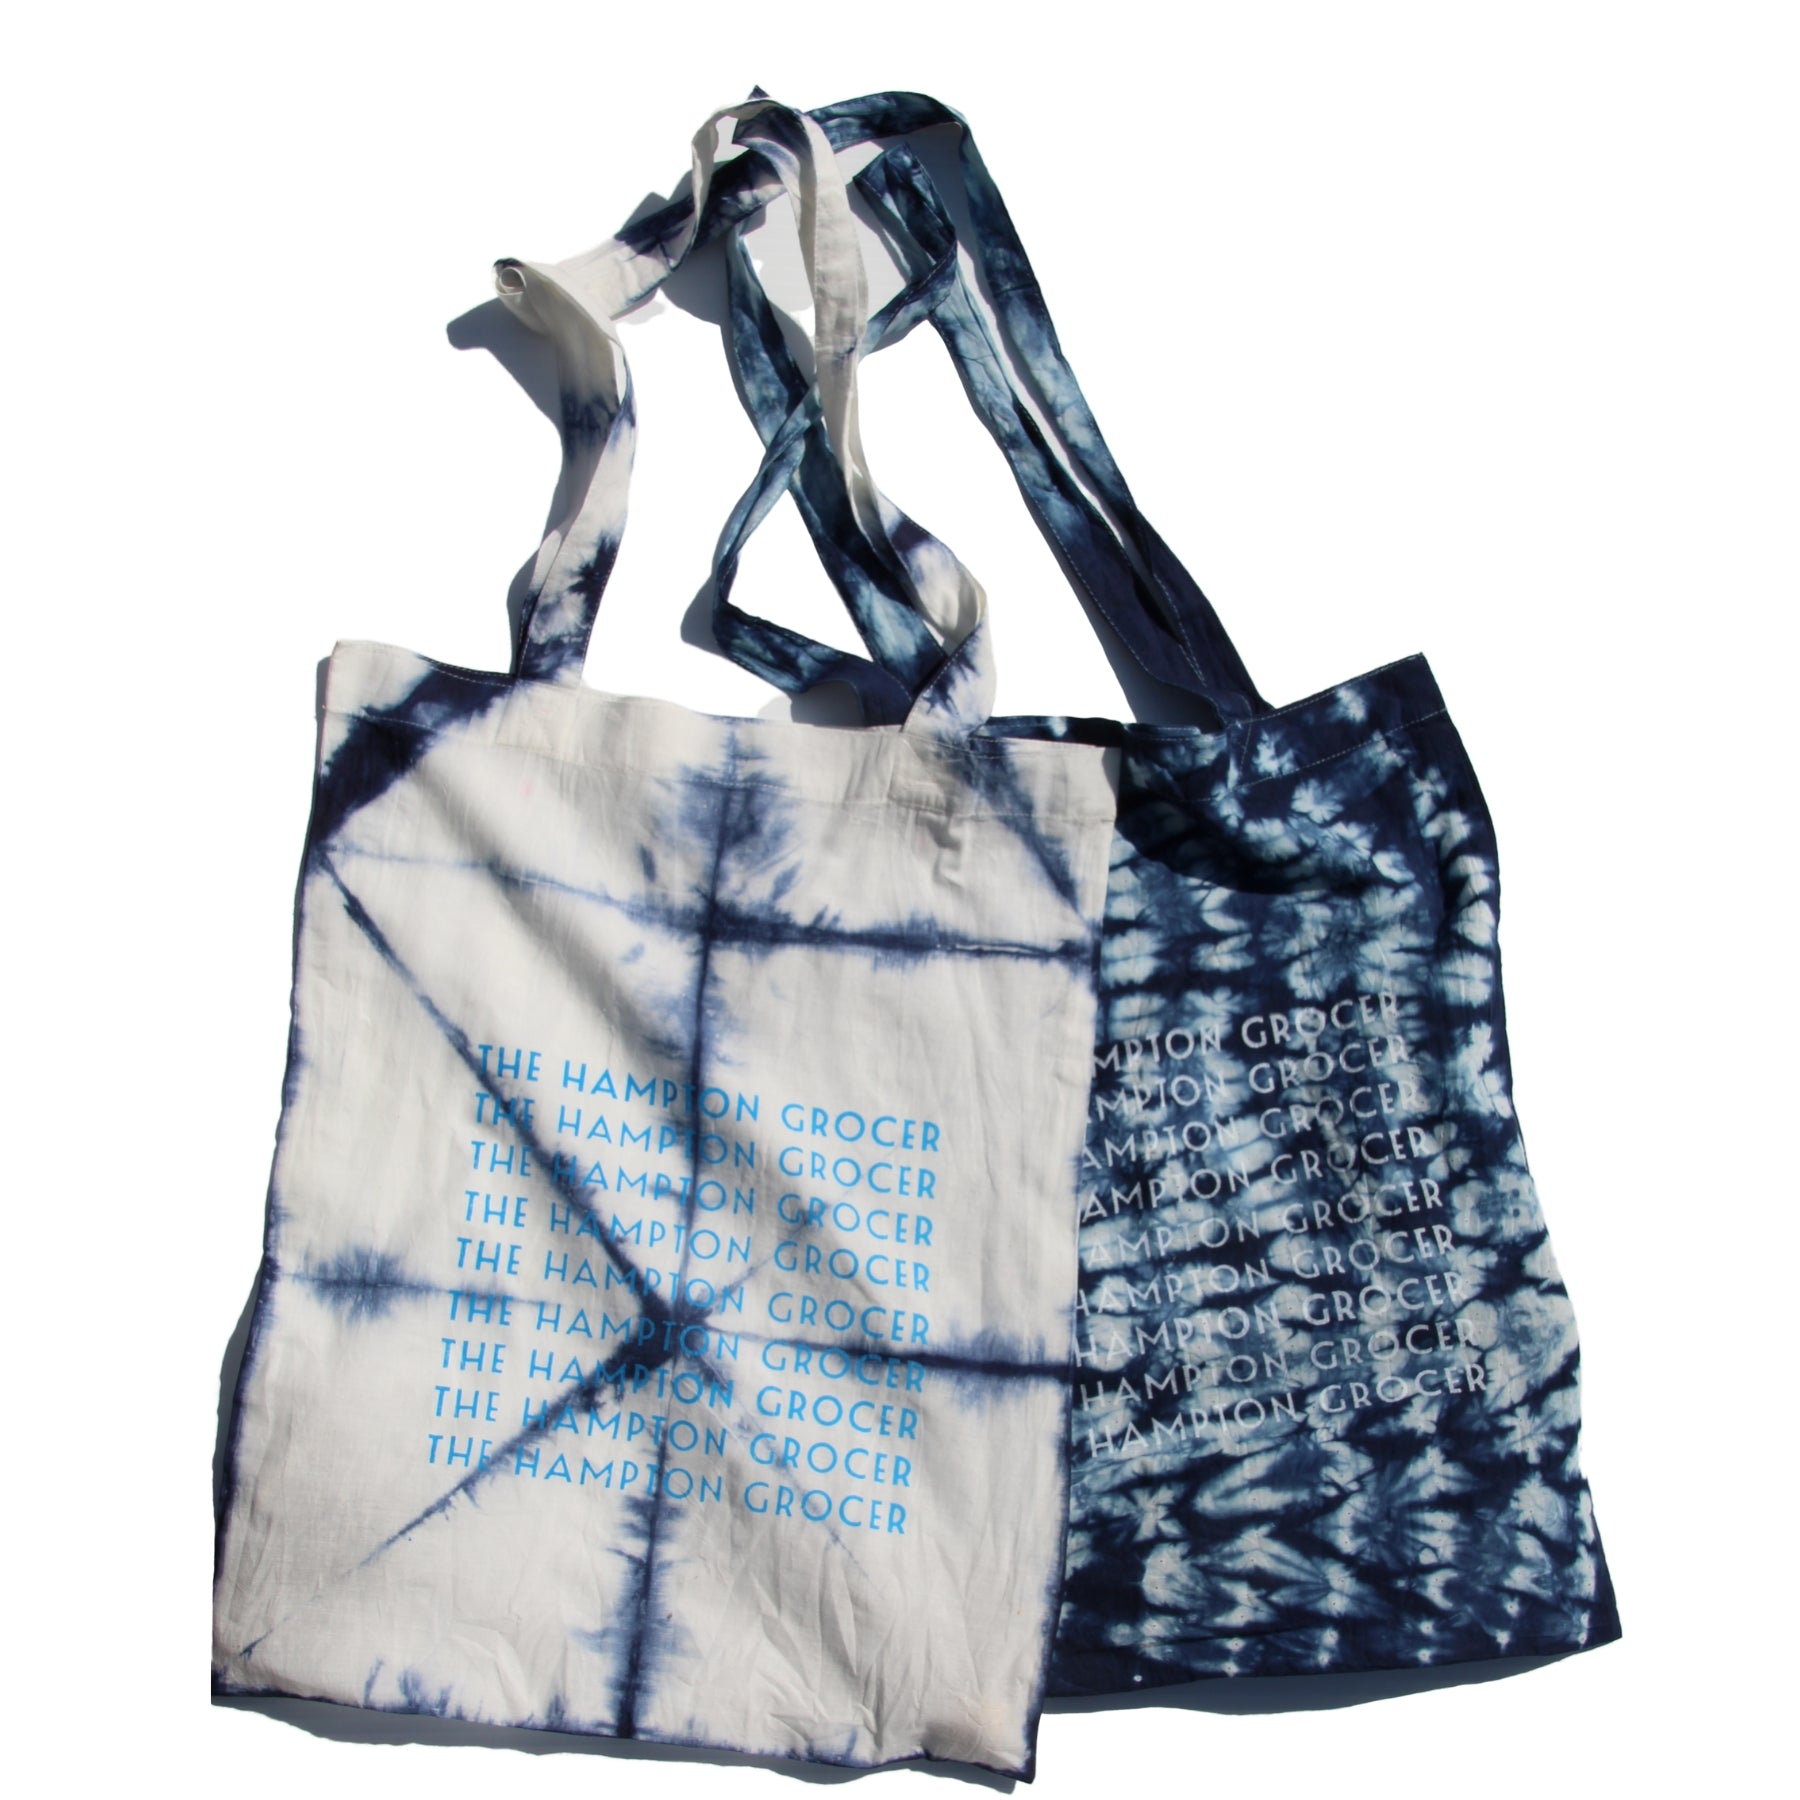 Merch - The Hampton Grocer Tote